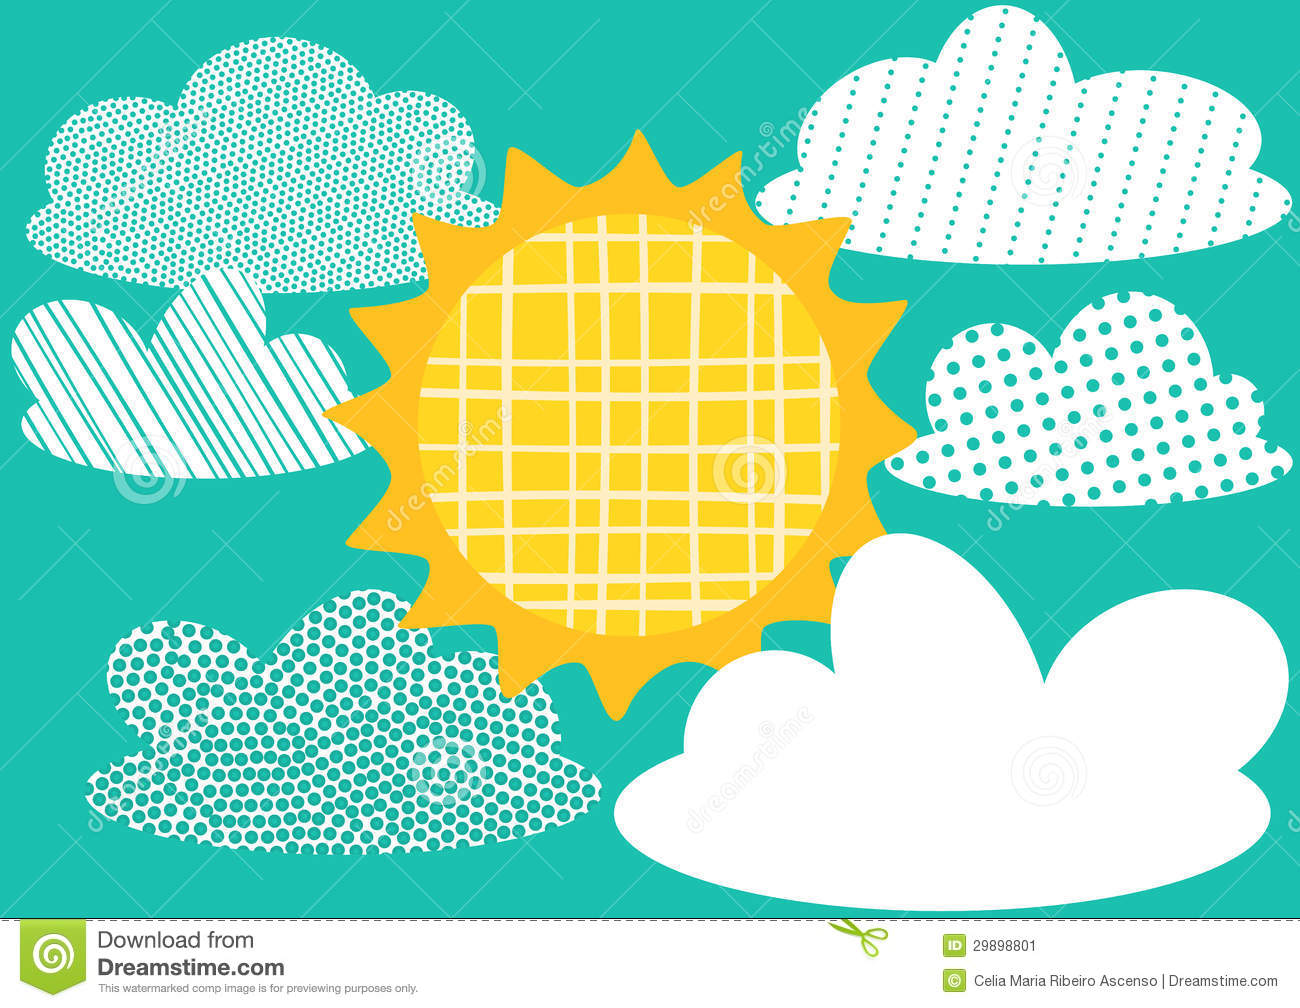 Greeting Card with Sun and Clouds